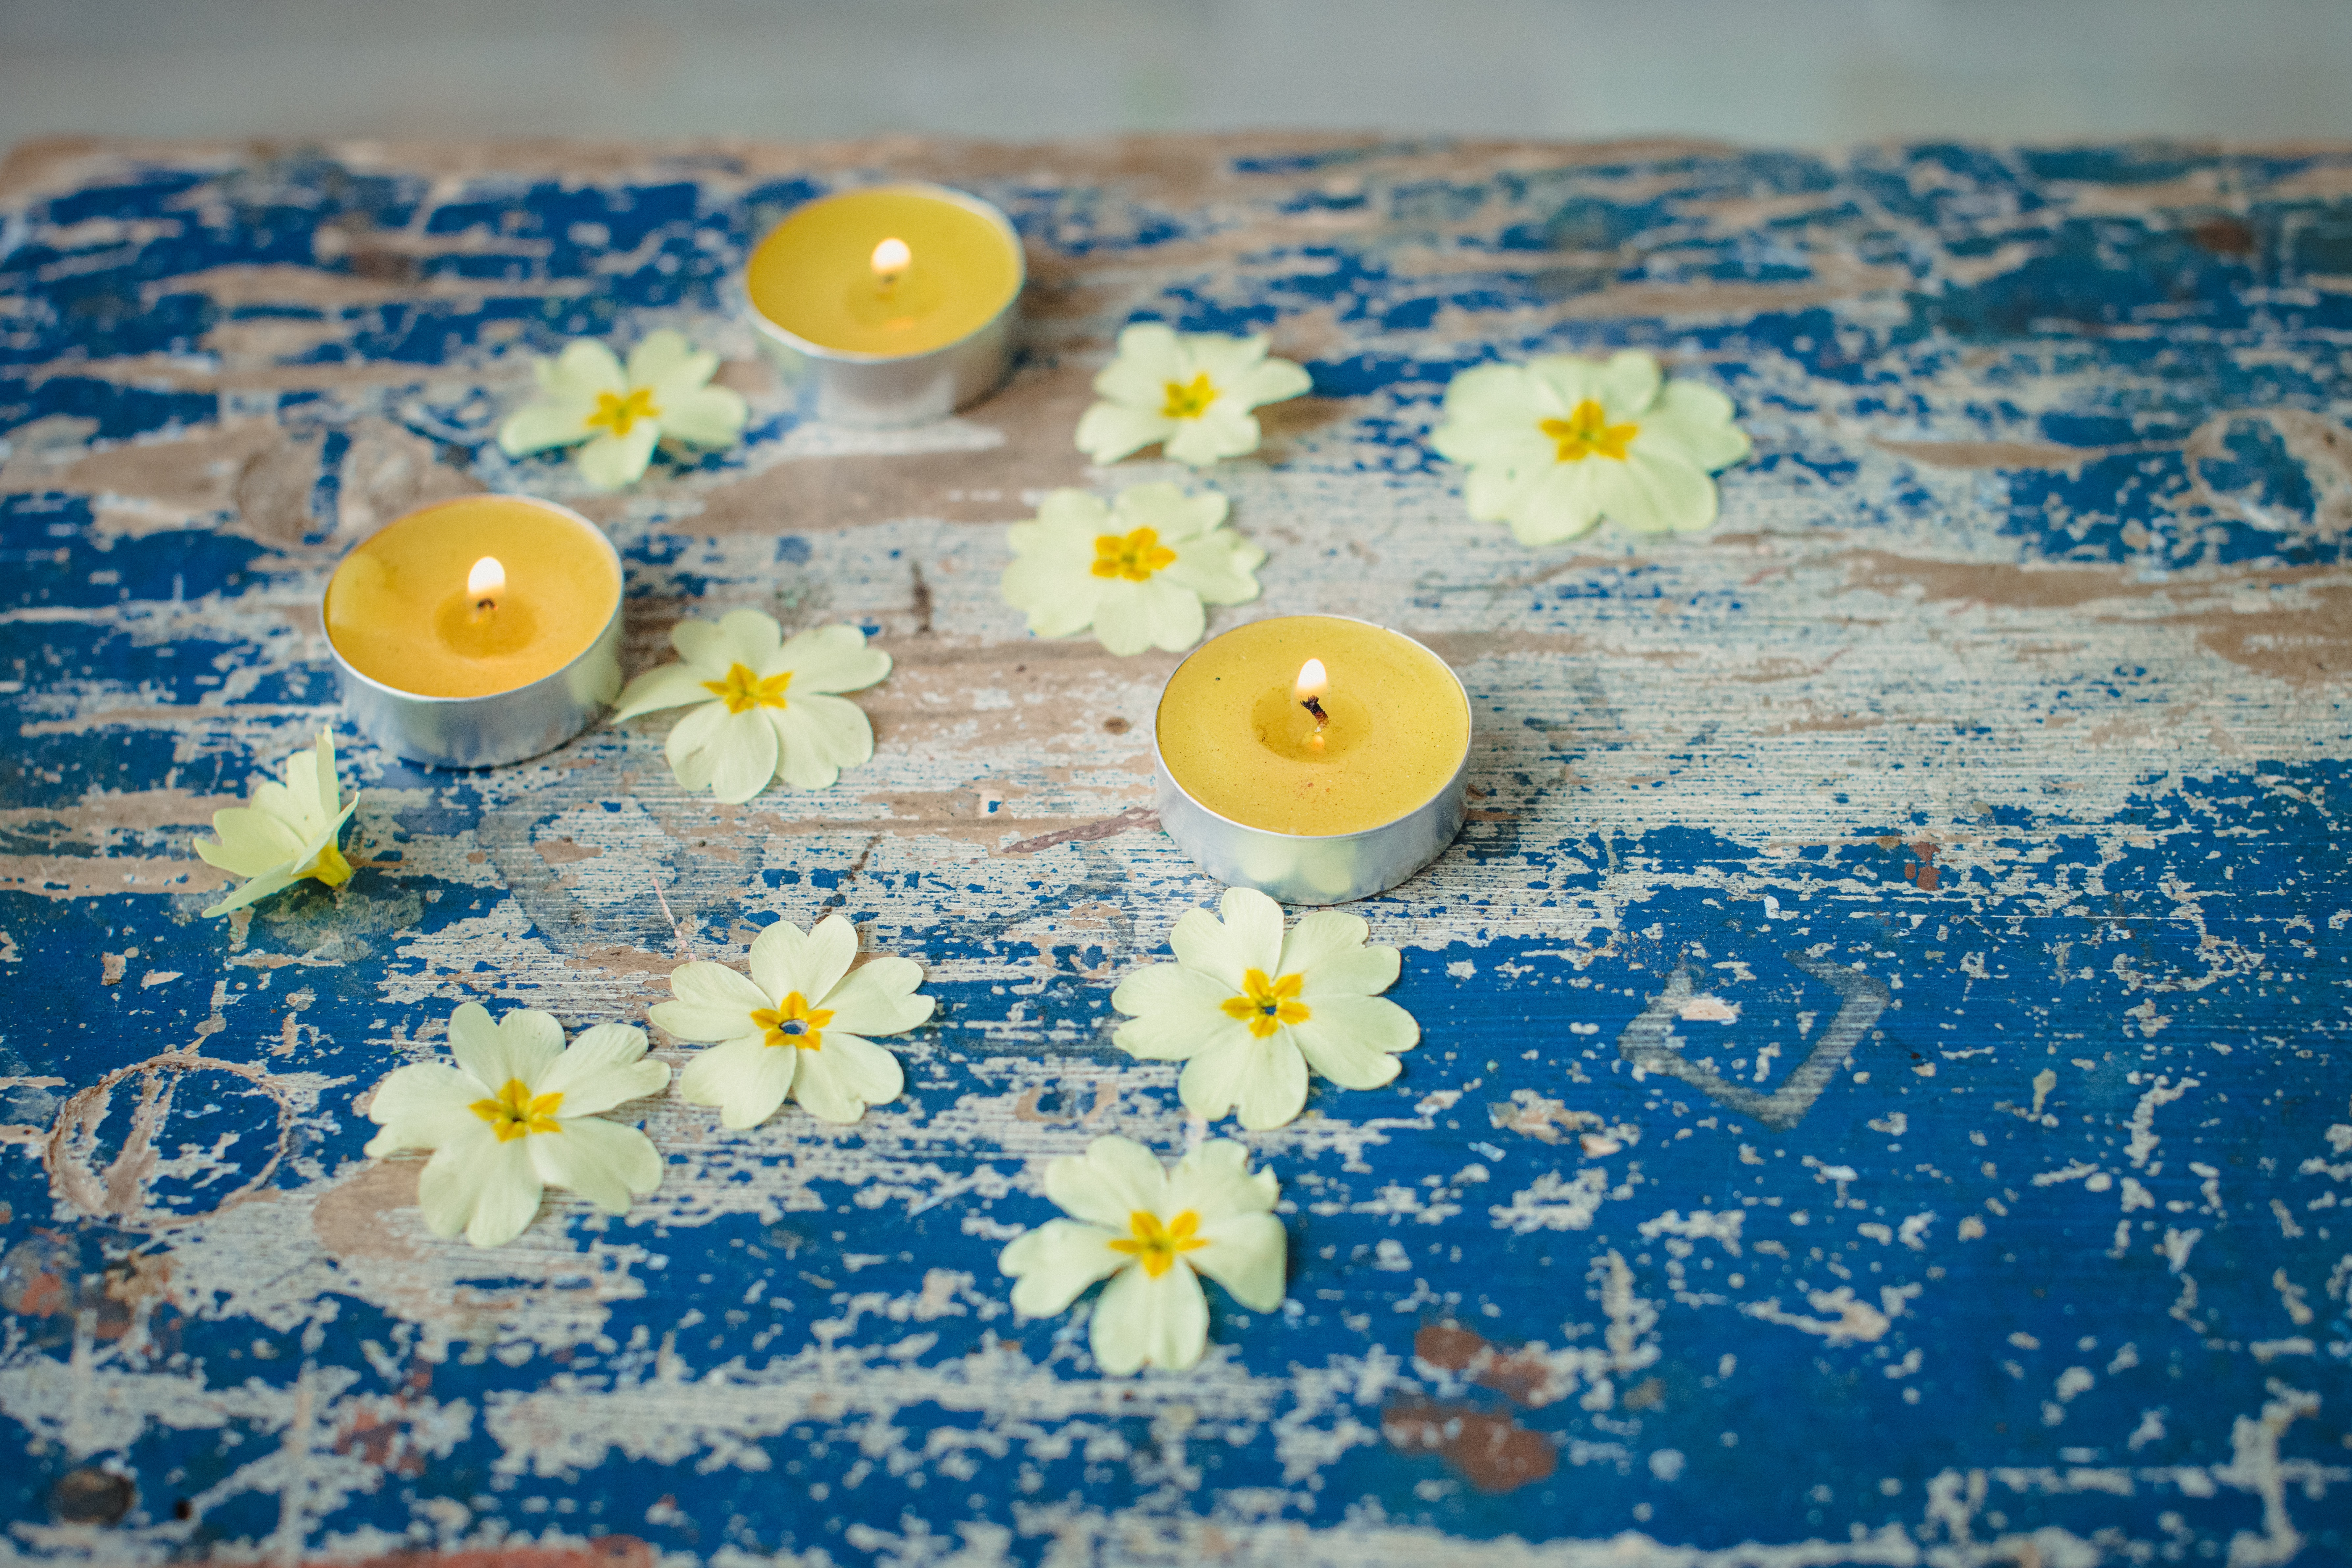 yellow tea light candles and yellow primrose flowers on distressed blue wooden table